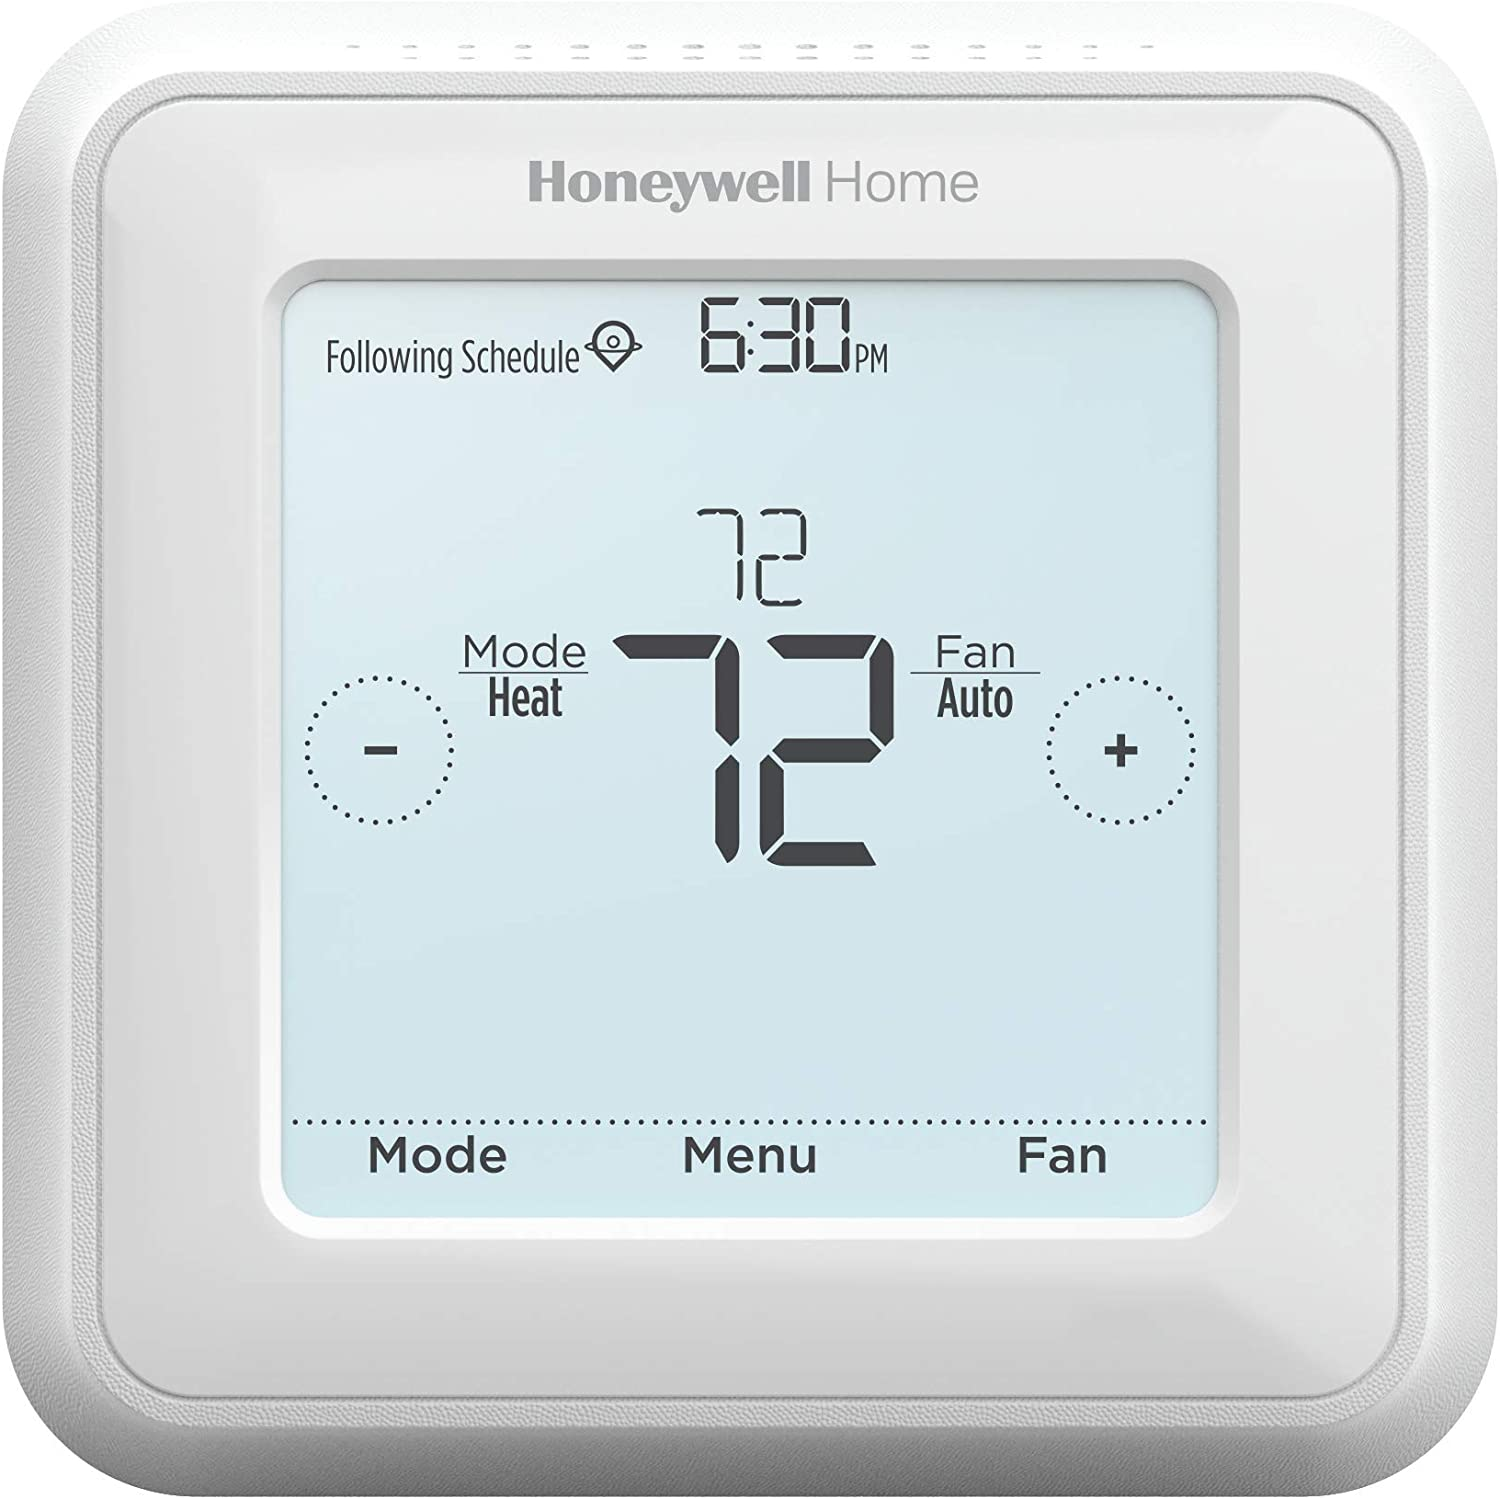 Honeywell Home RTH8560D 7 Day Programmable Touchscreen Thermostat